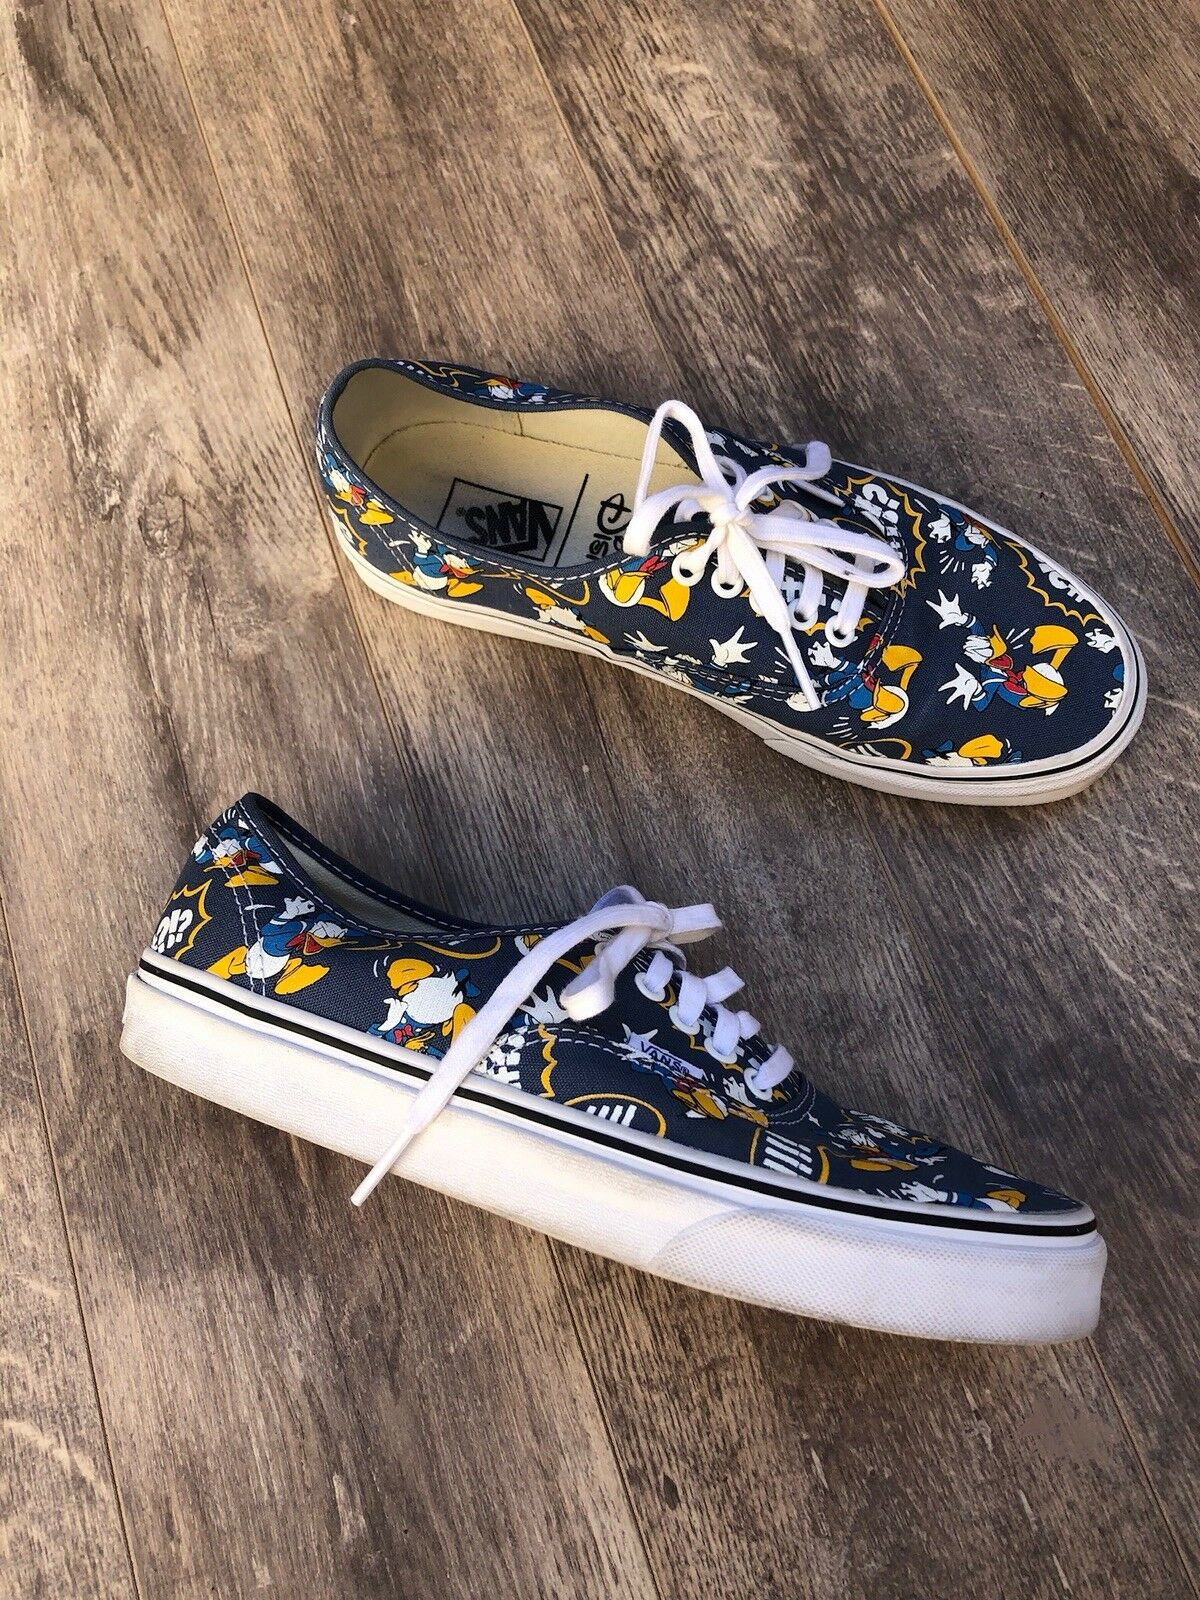 Childrens Disney Donald Duck Character Pumps Trainers Child Shoe Sizes 10 to 2.5